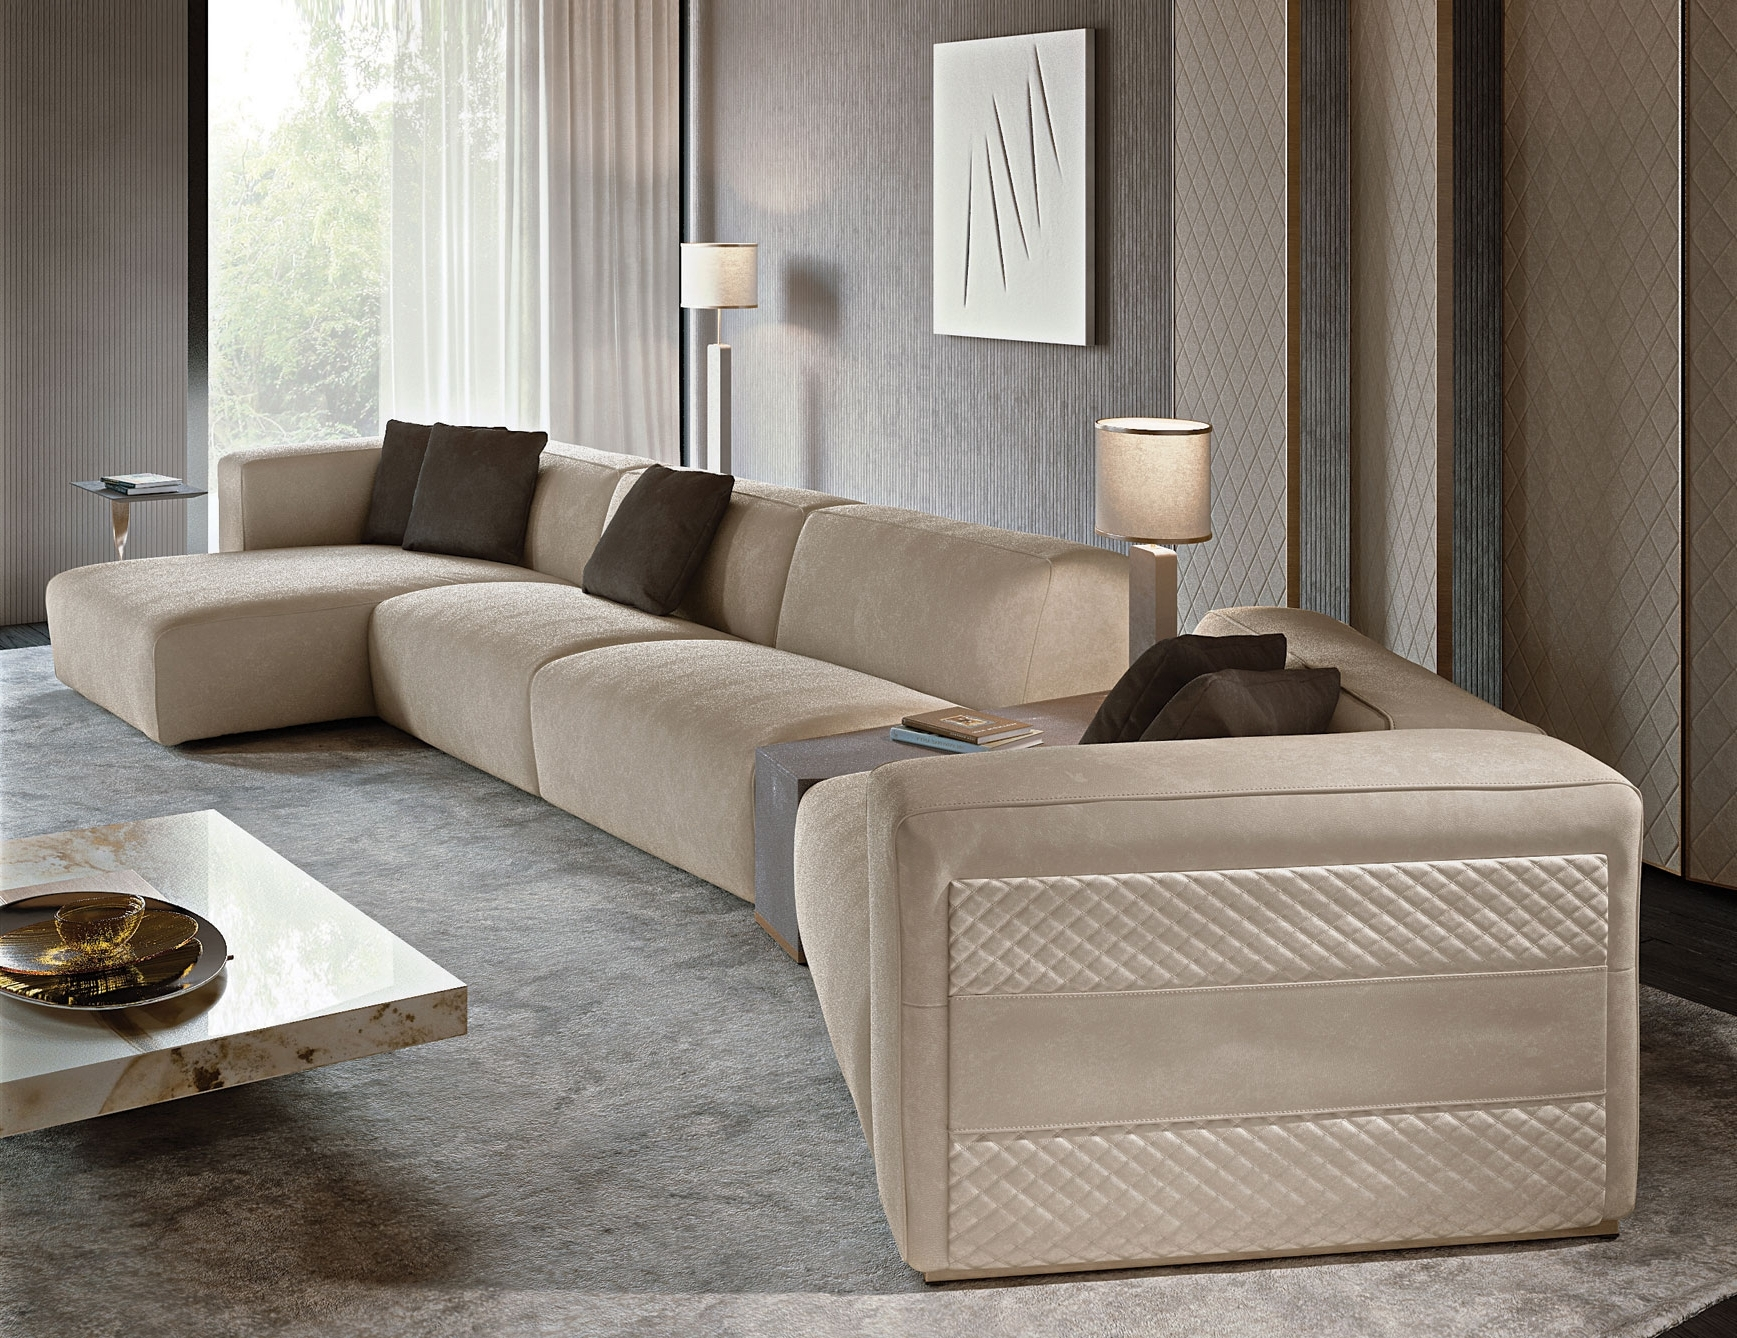 Sofas And Chairs In Most Up To Date Nella Vetrina Rugiano Freud Sectional Sofa In Suede (View 2 of 20)